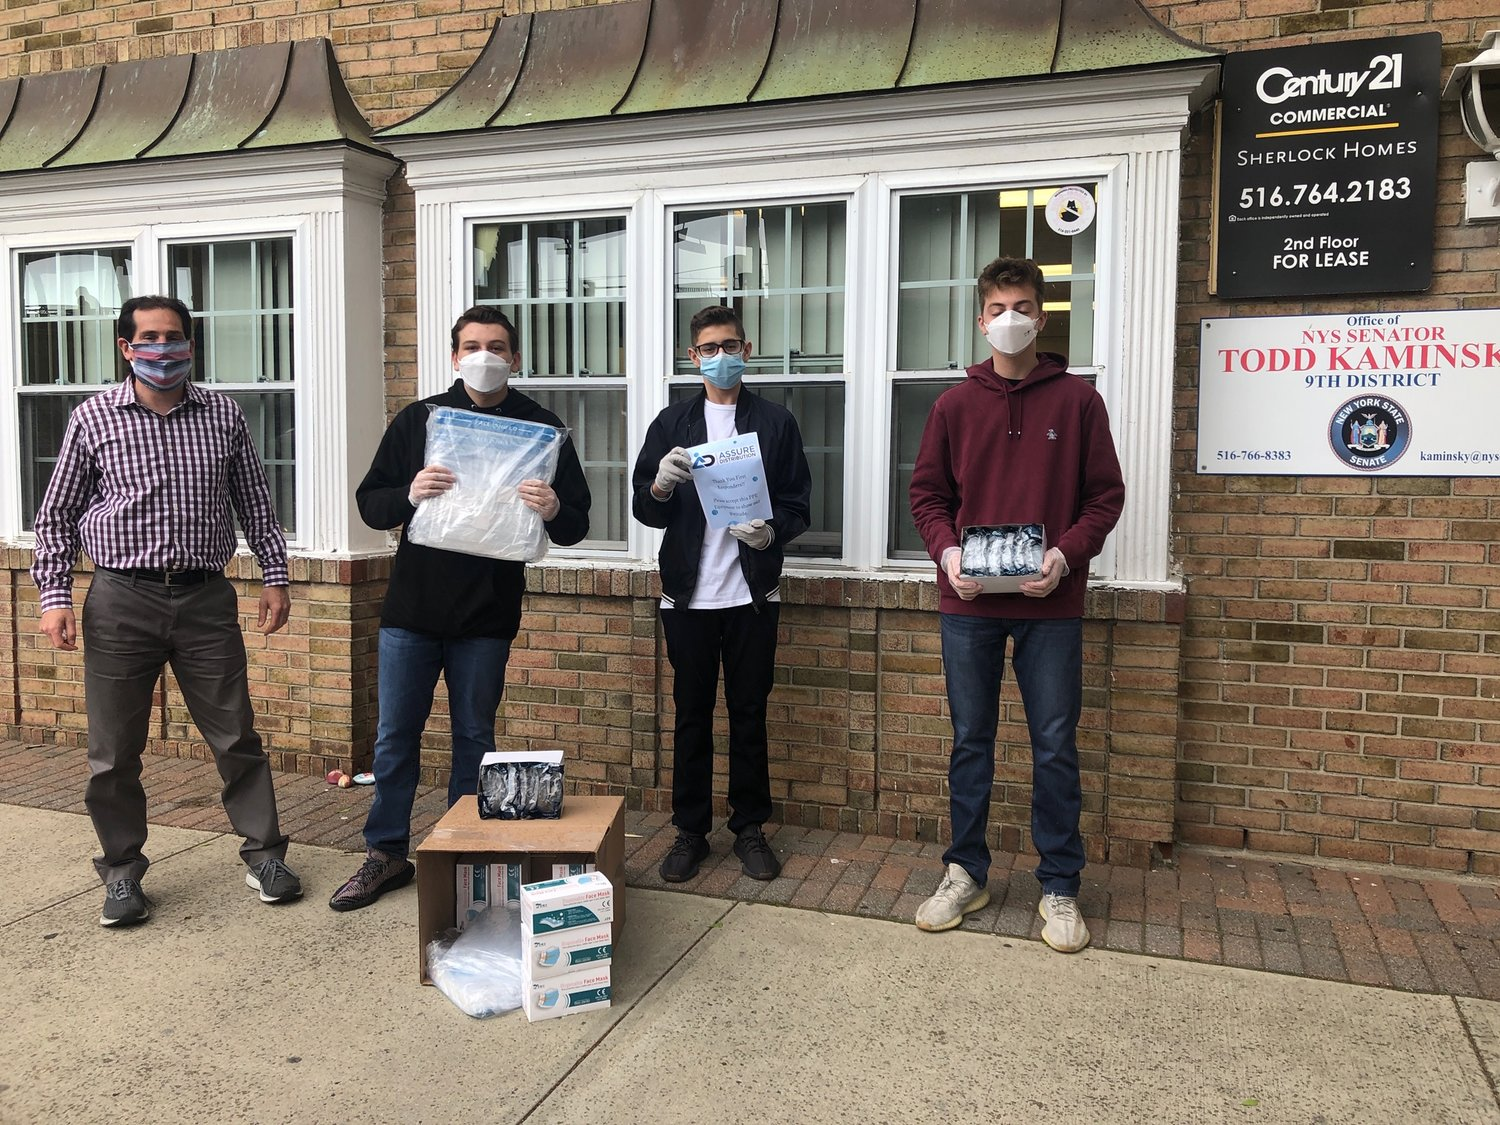 MID Donations has worked with State Sen. Todd Kaminsky, left, who was with Dylan Mirvis, Matthew Field and Ian Volman outside the state senator's Rockville Centre office on May 11.